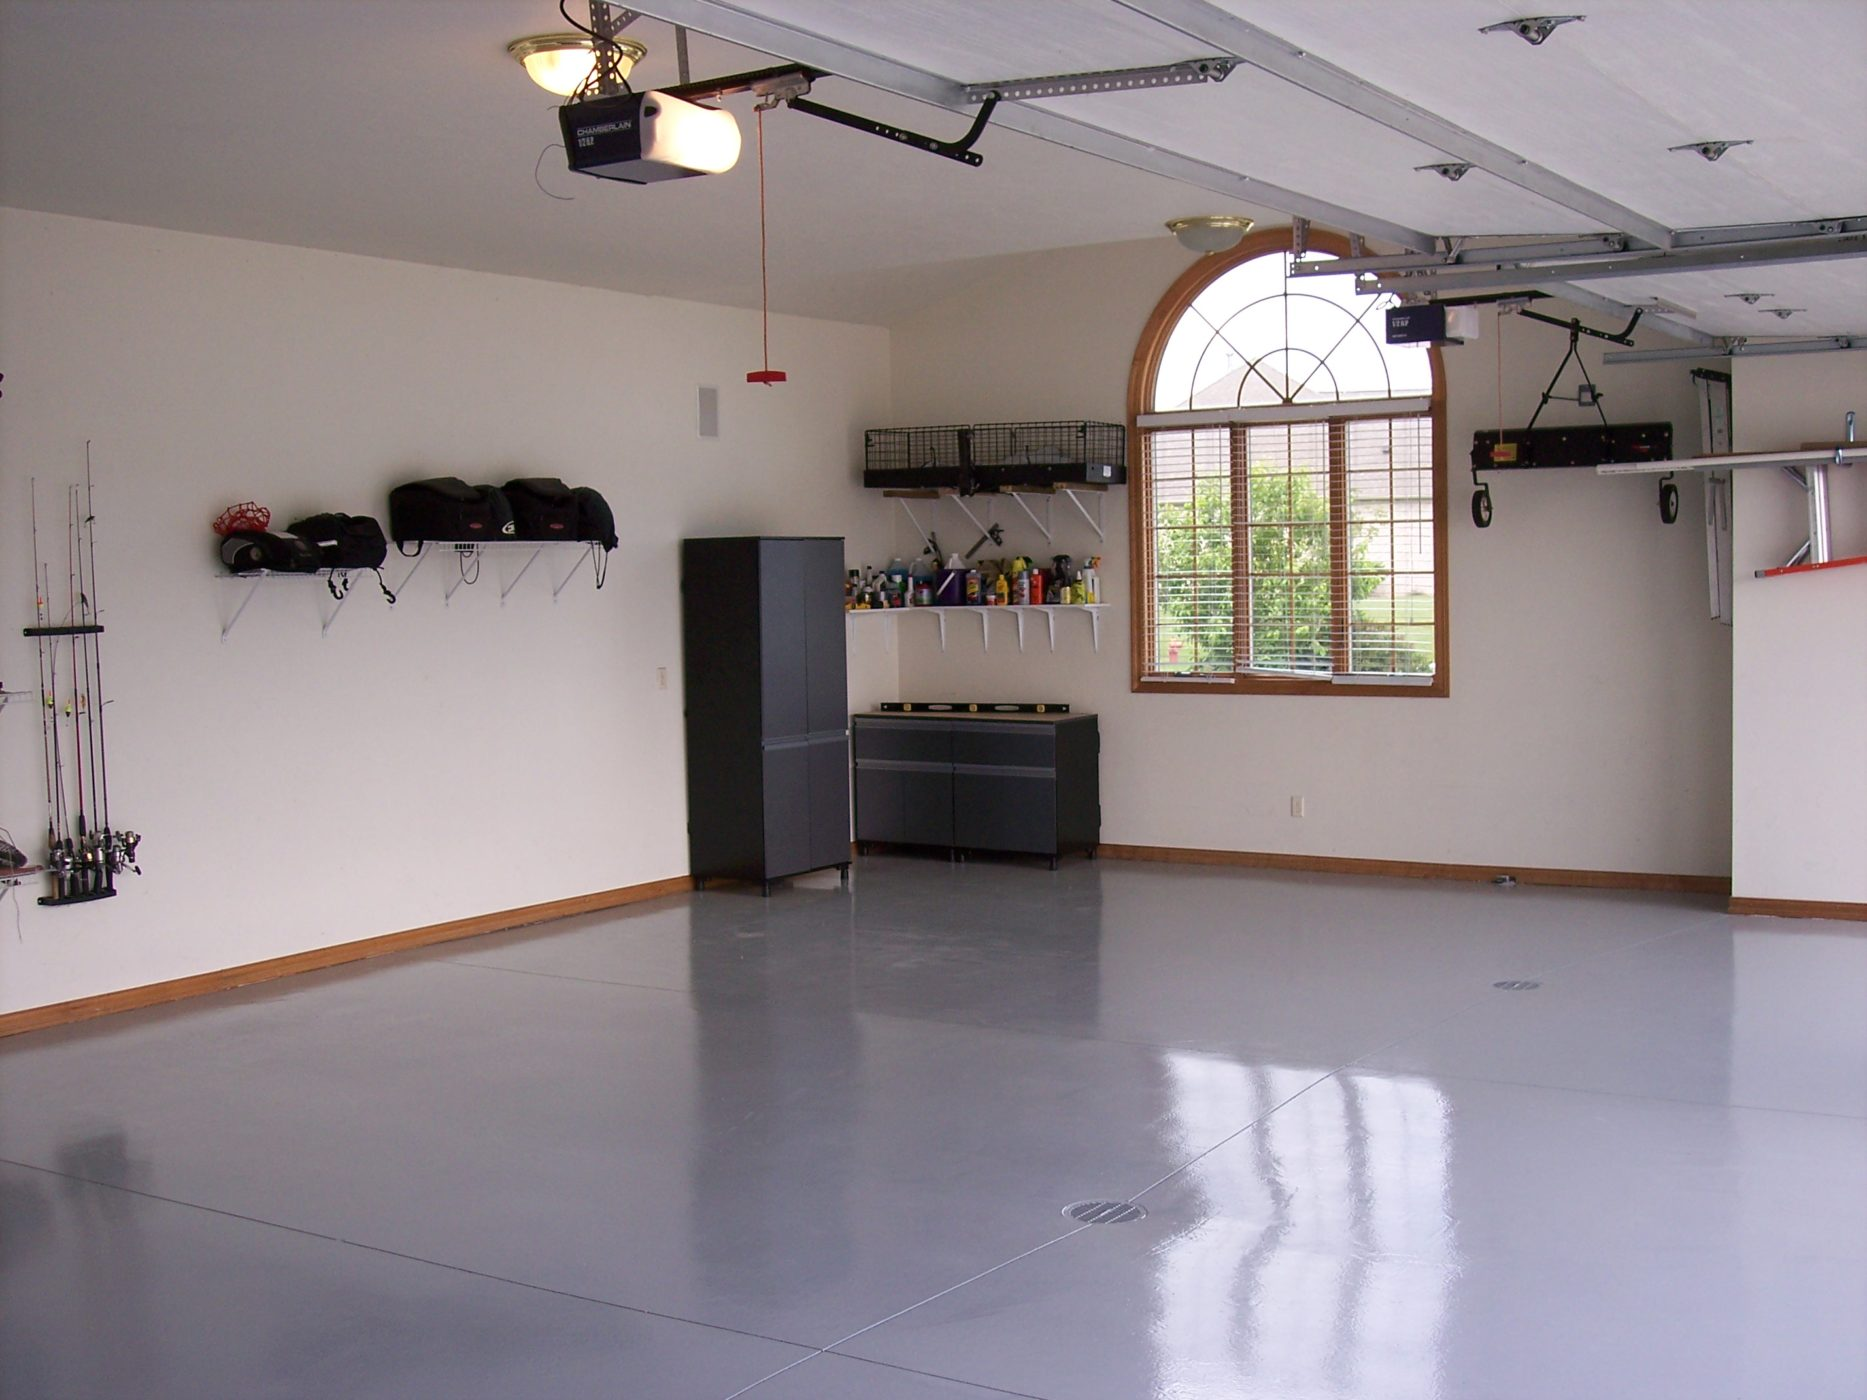 Garage Floor Epoxy Options Garage Floor Coating Armorpoxy Garage Flooring Paint